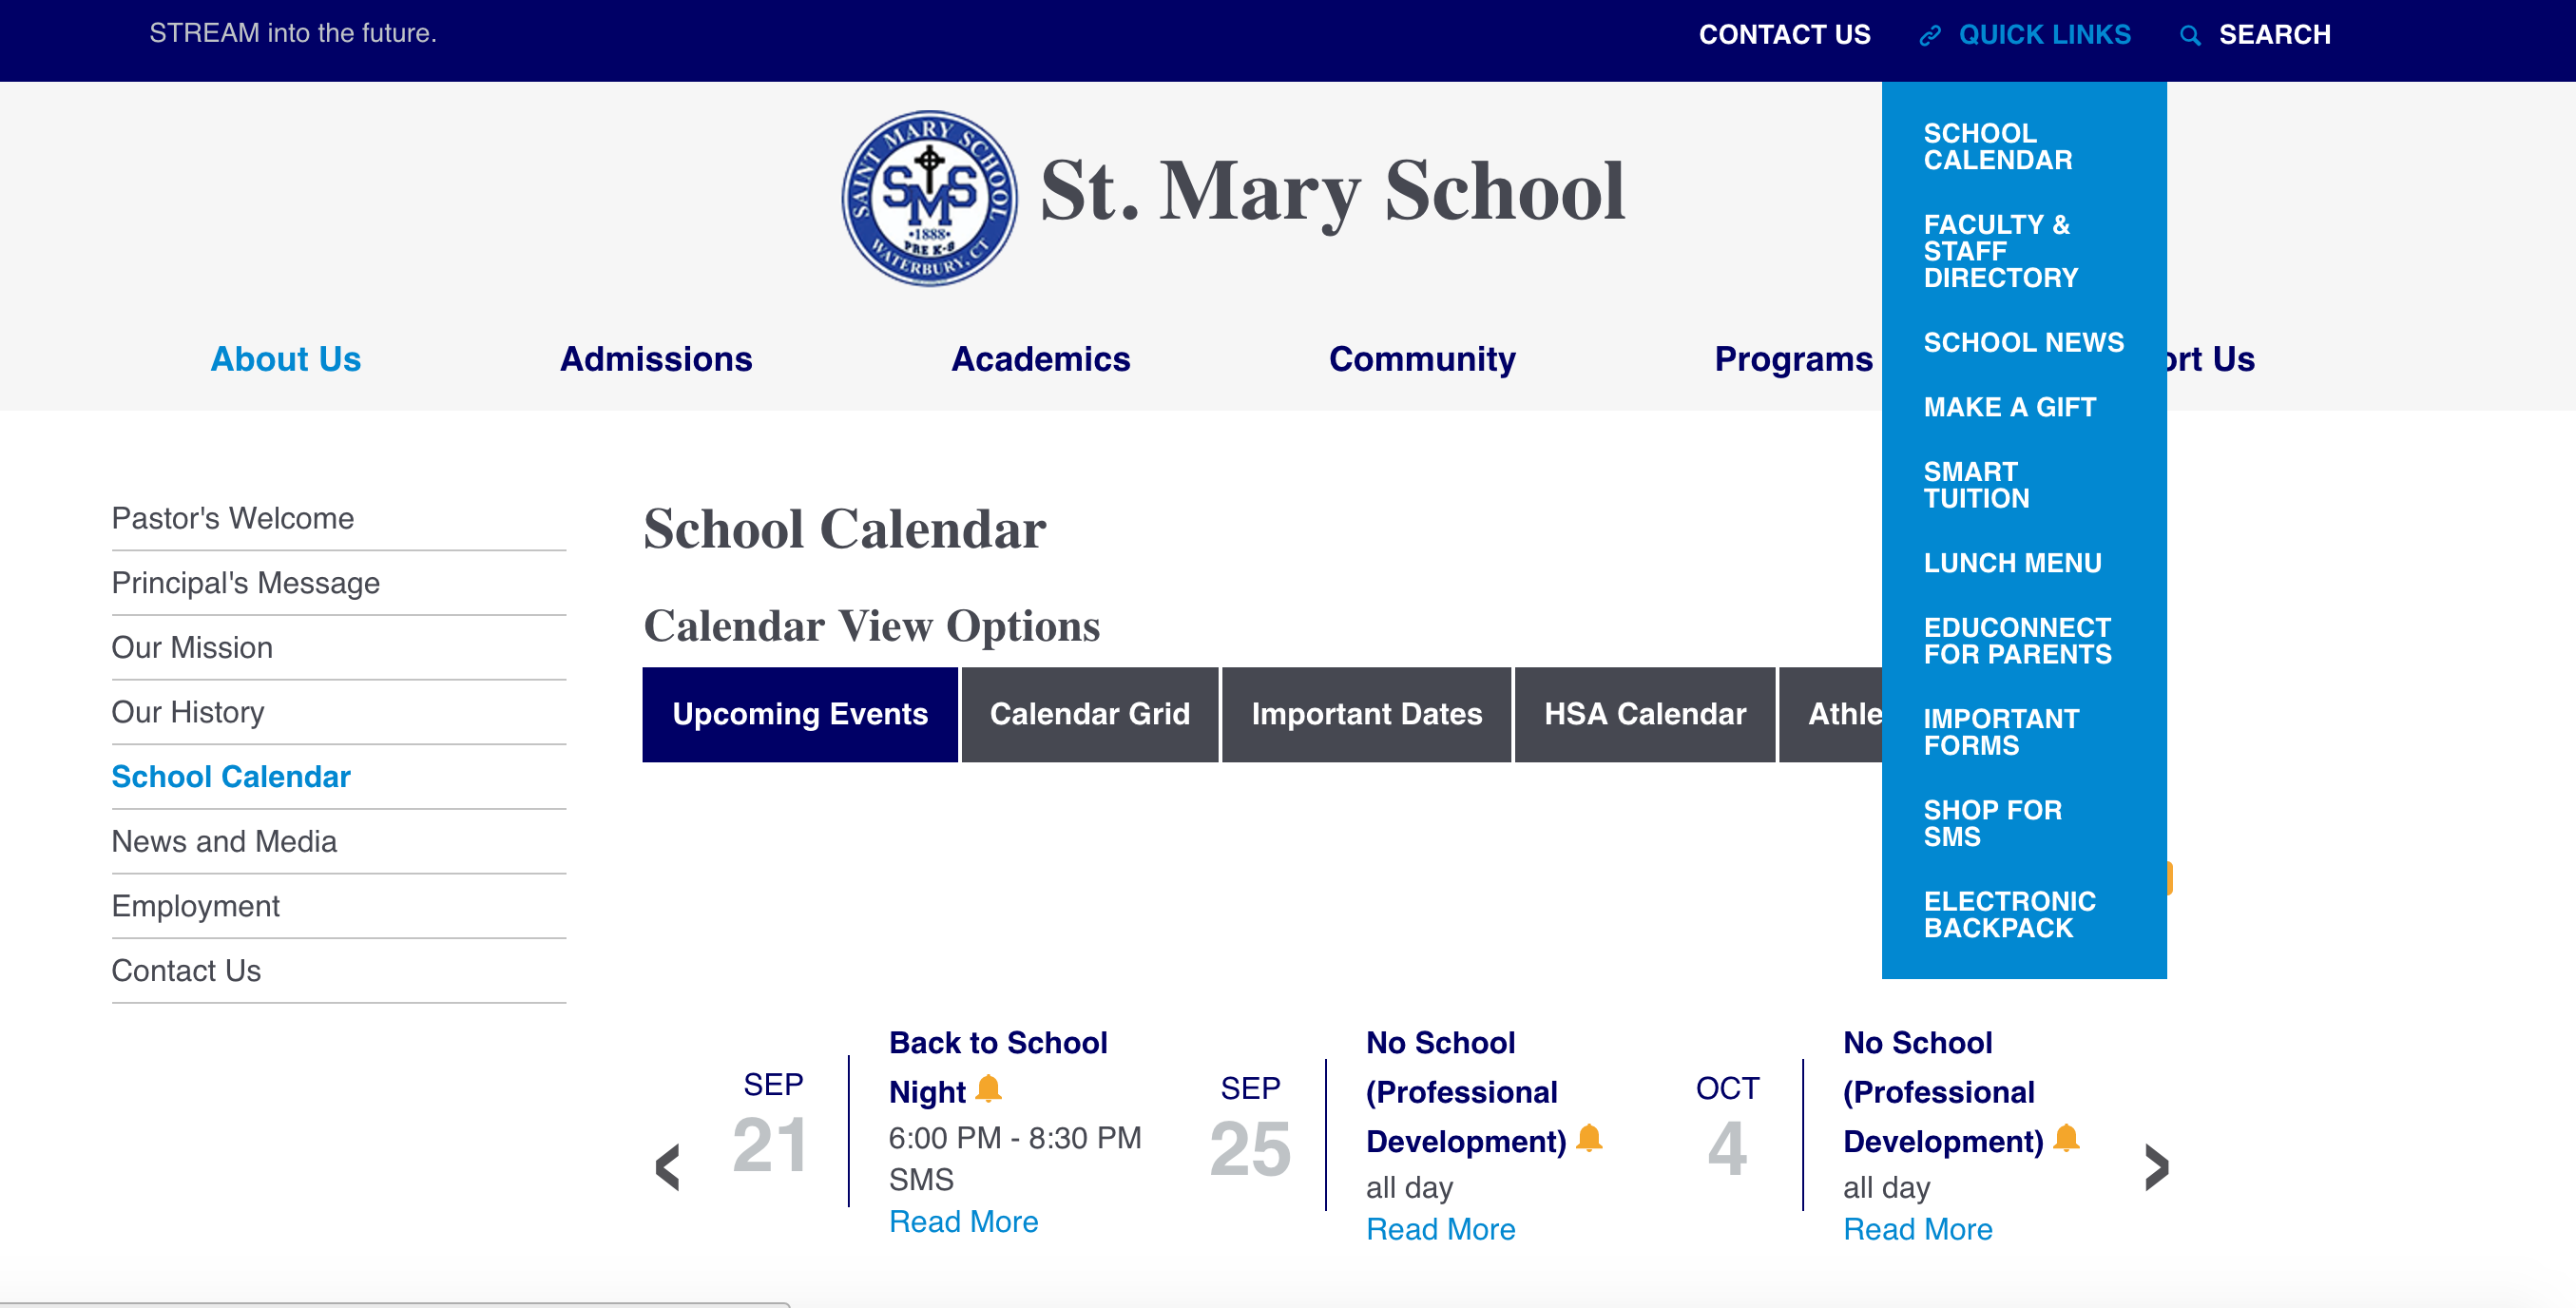 St. Mary School Calendar